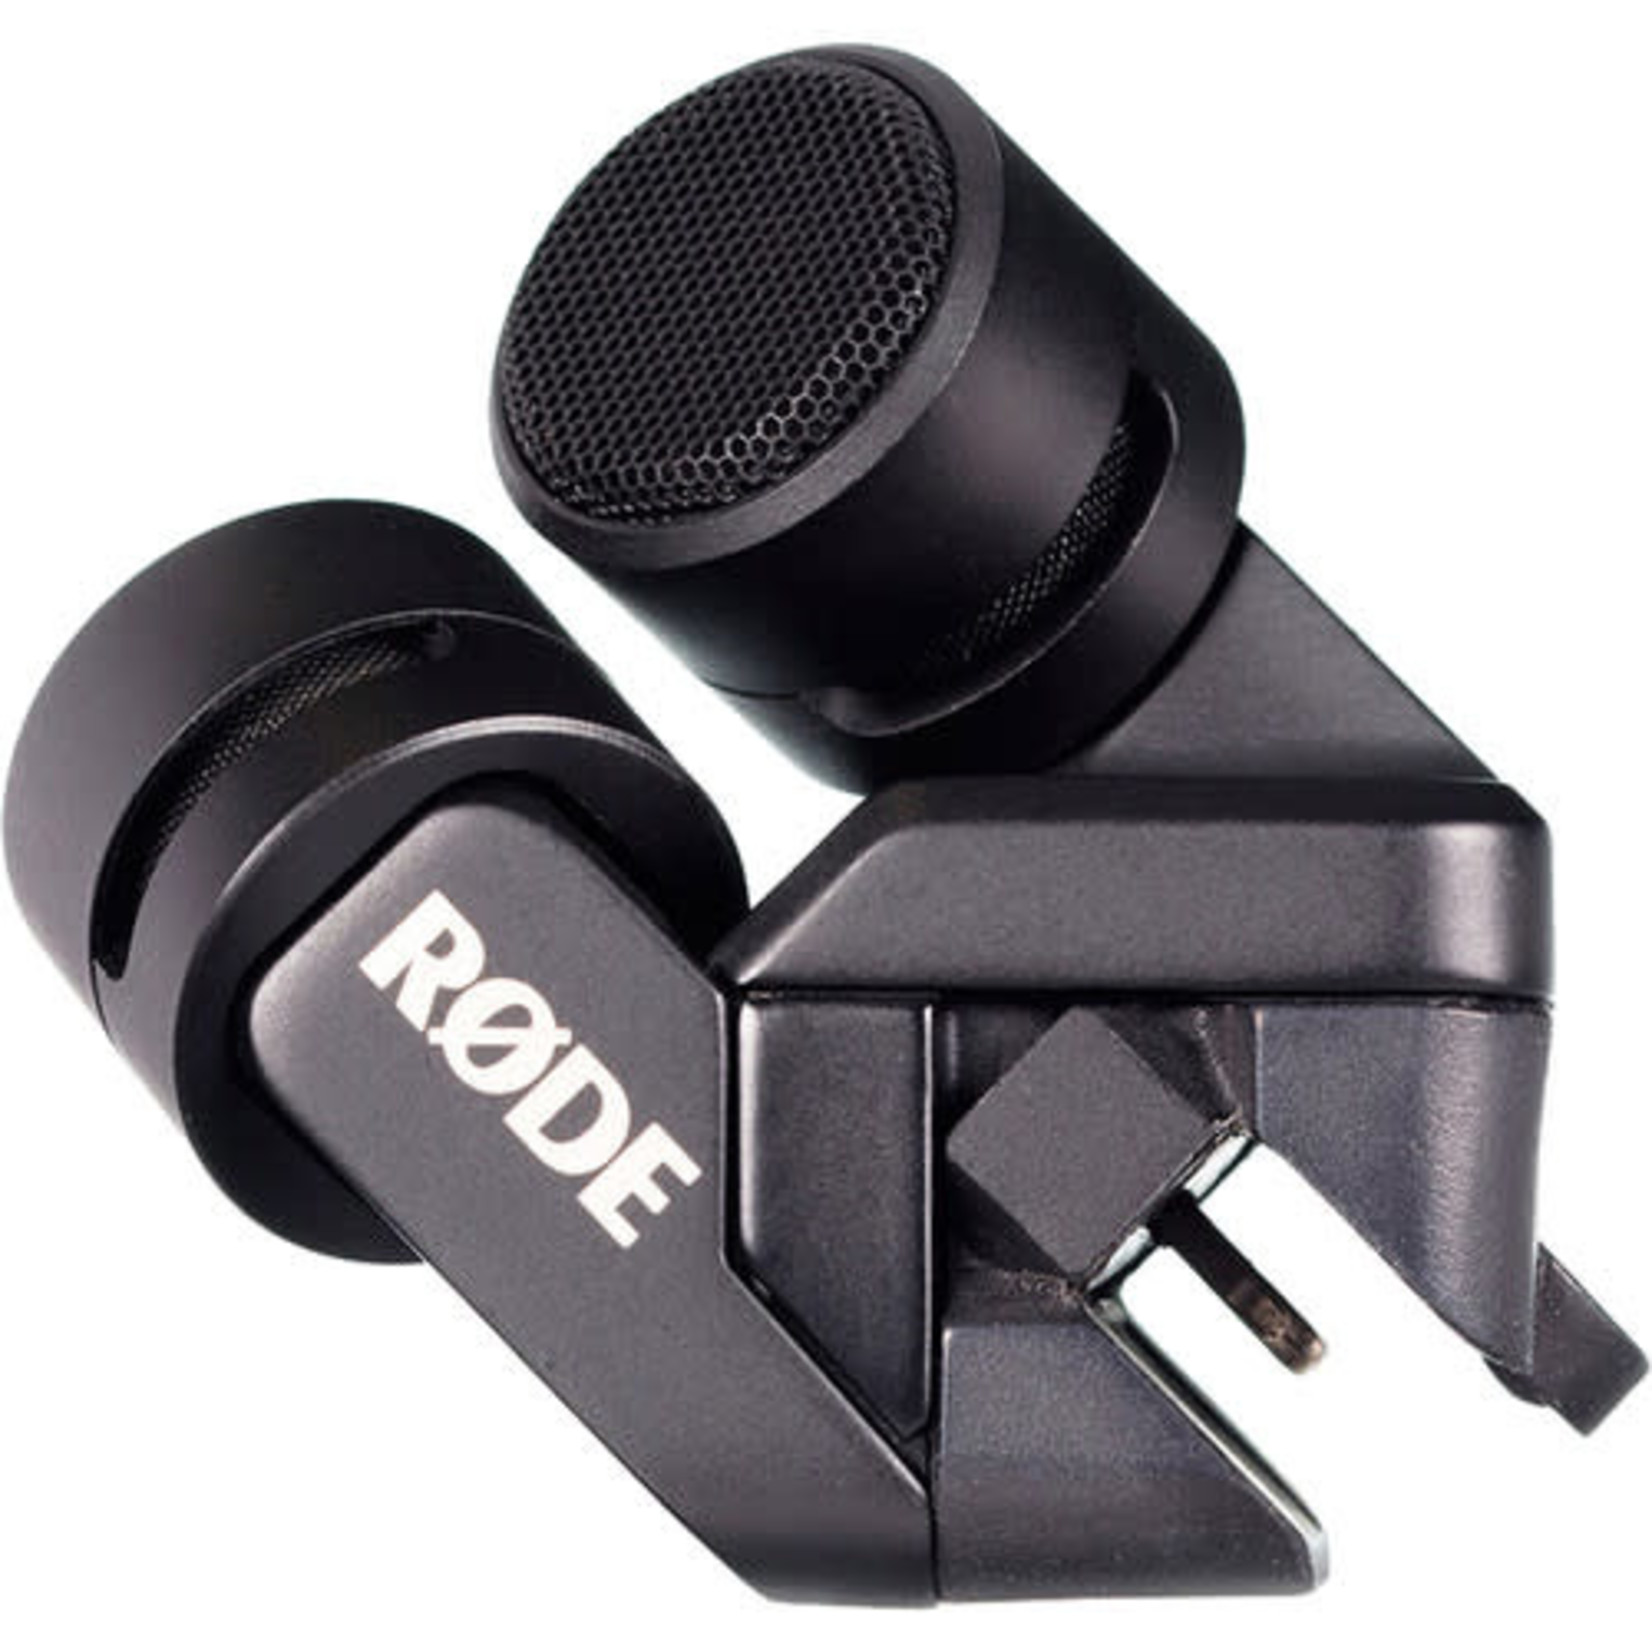 Rode Rode iXY Stereo Microphone (Lightning Connector)